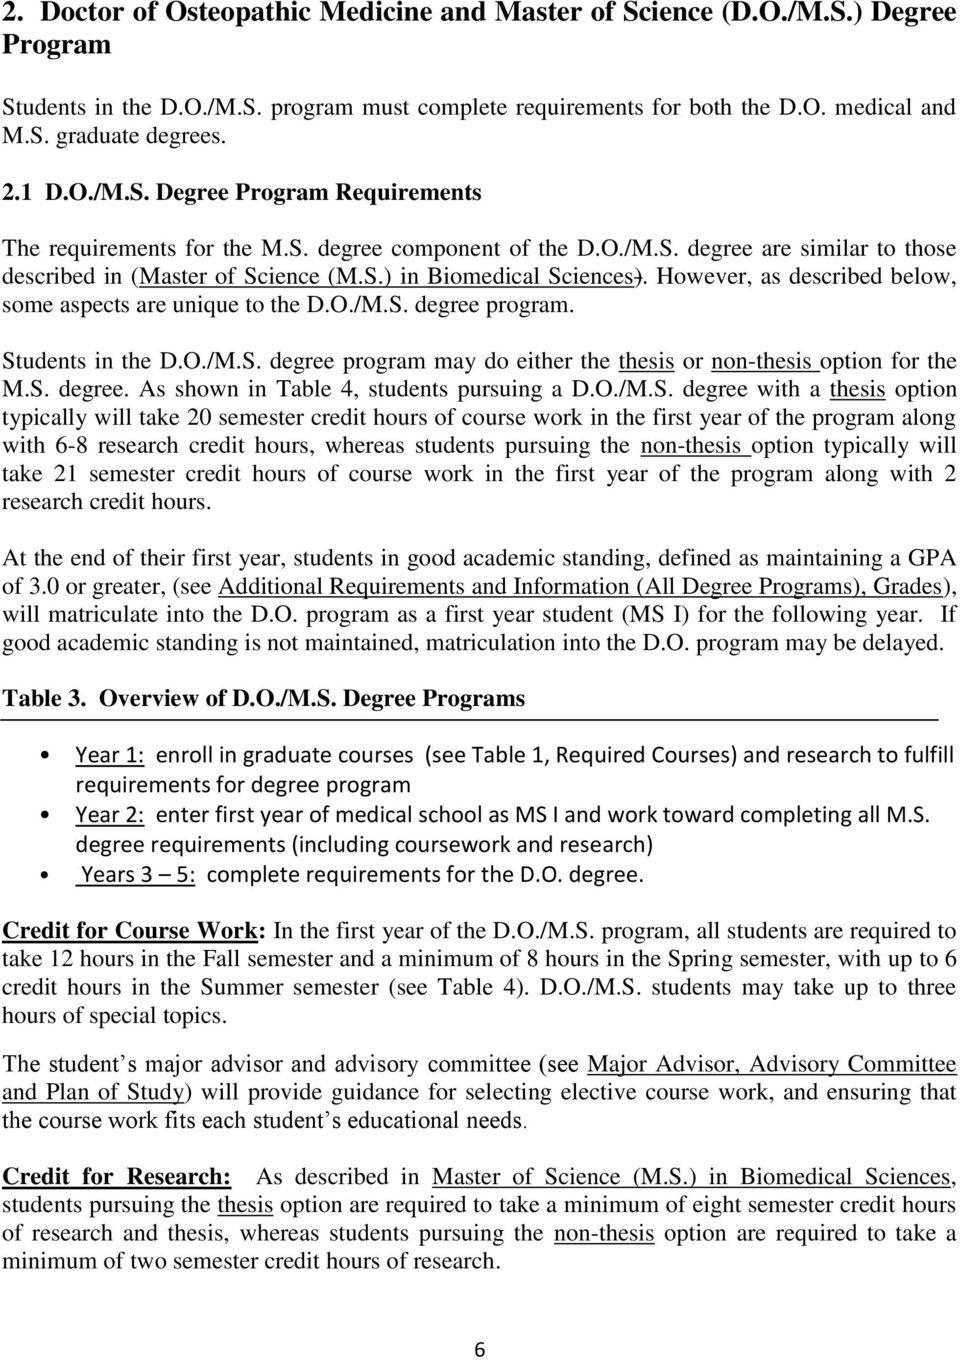 However, as described below, some aspects are unique to the D.O./M.S. degree program. Students in the D.O./M.S. degree program may do either the thesis or non-thesis option for the M.S. degree. As shown in Table 4, students pursuing a D.